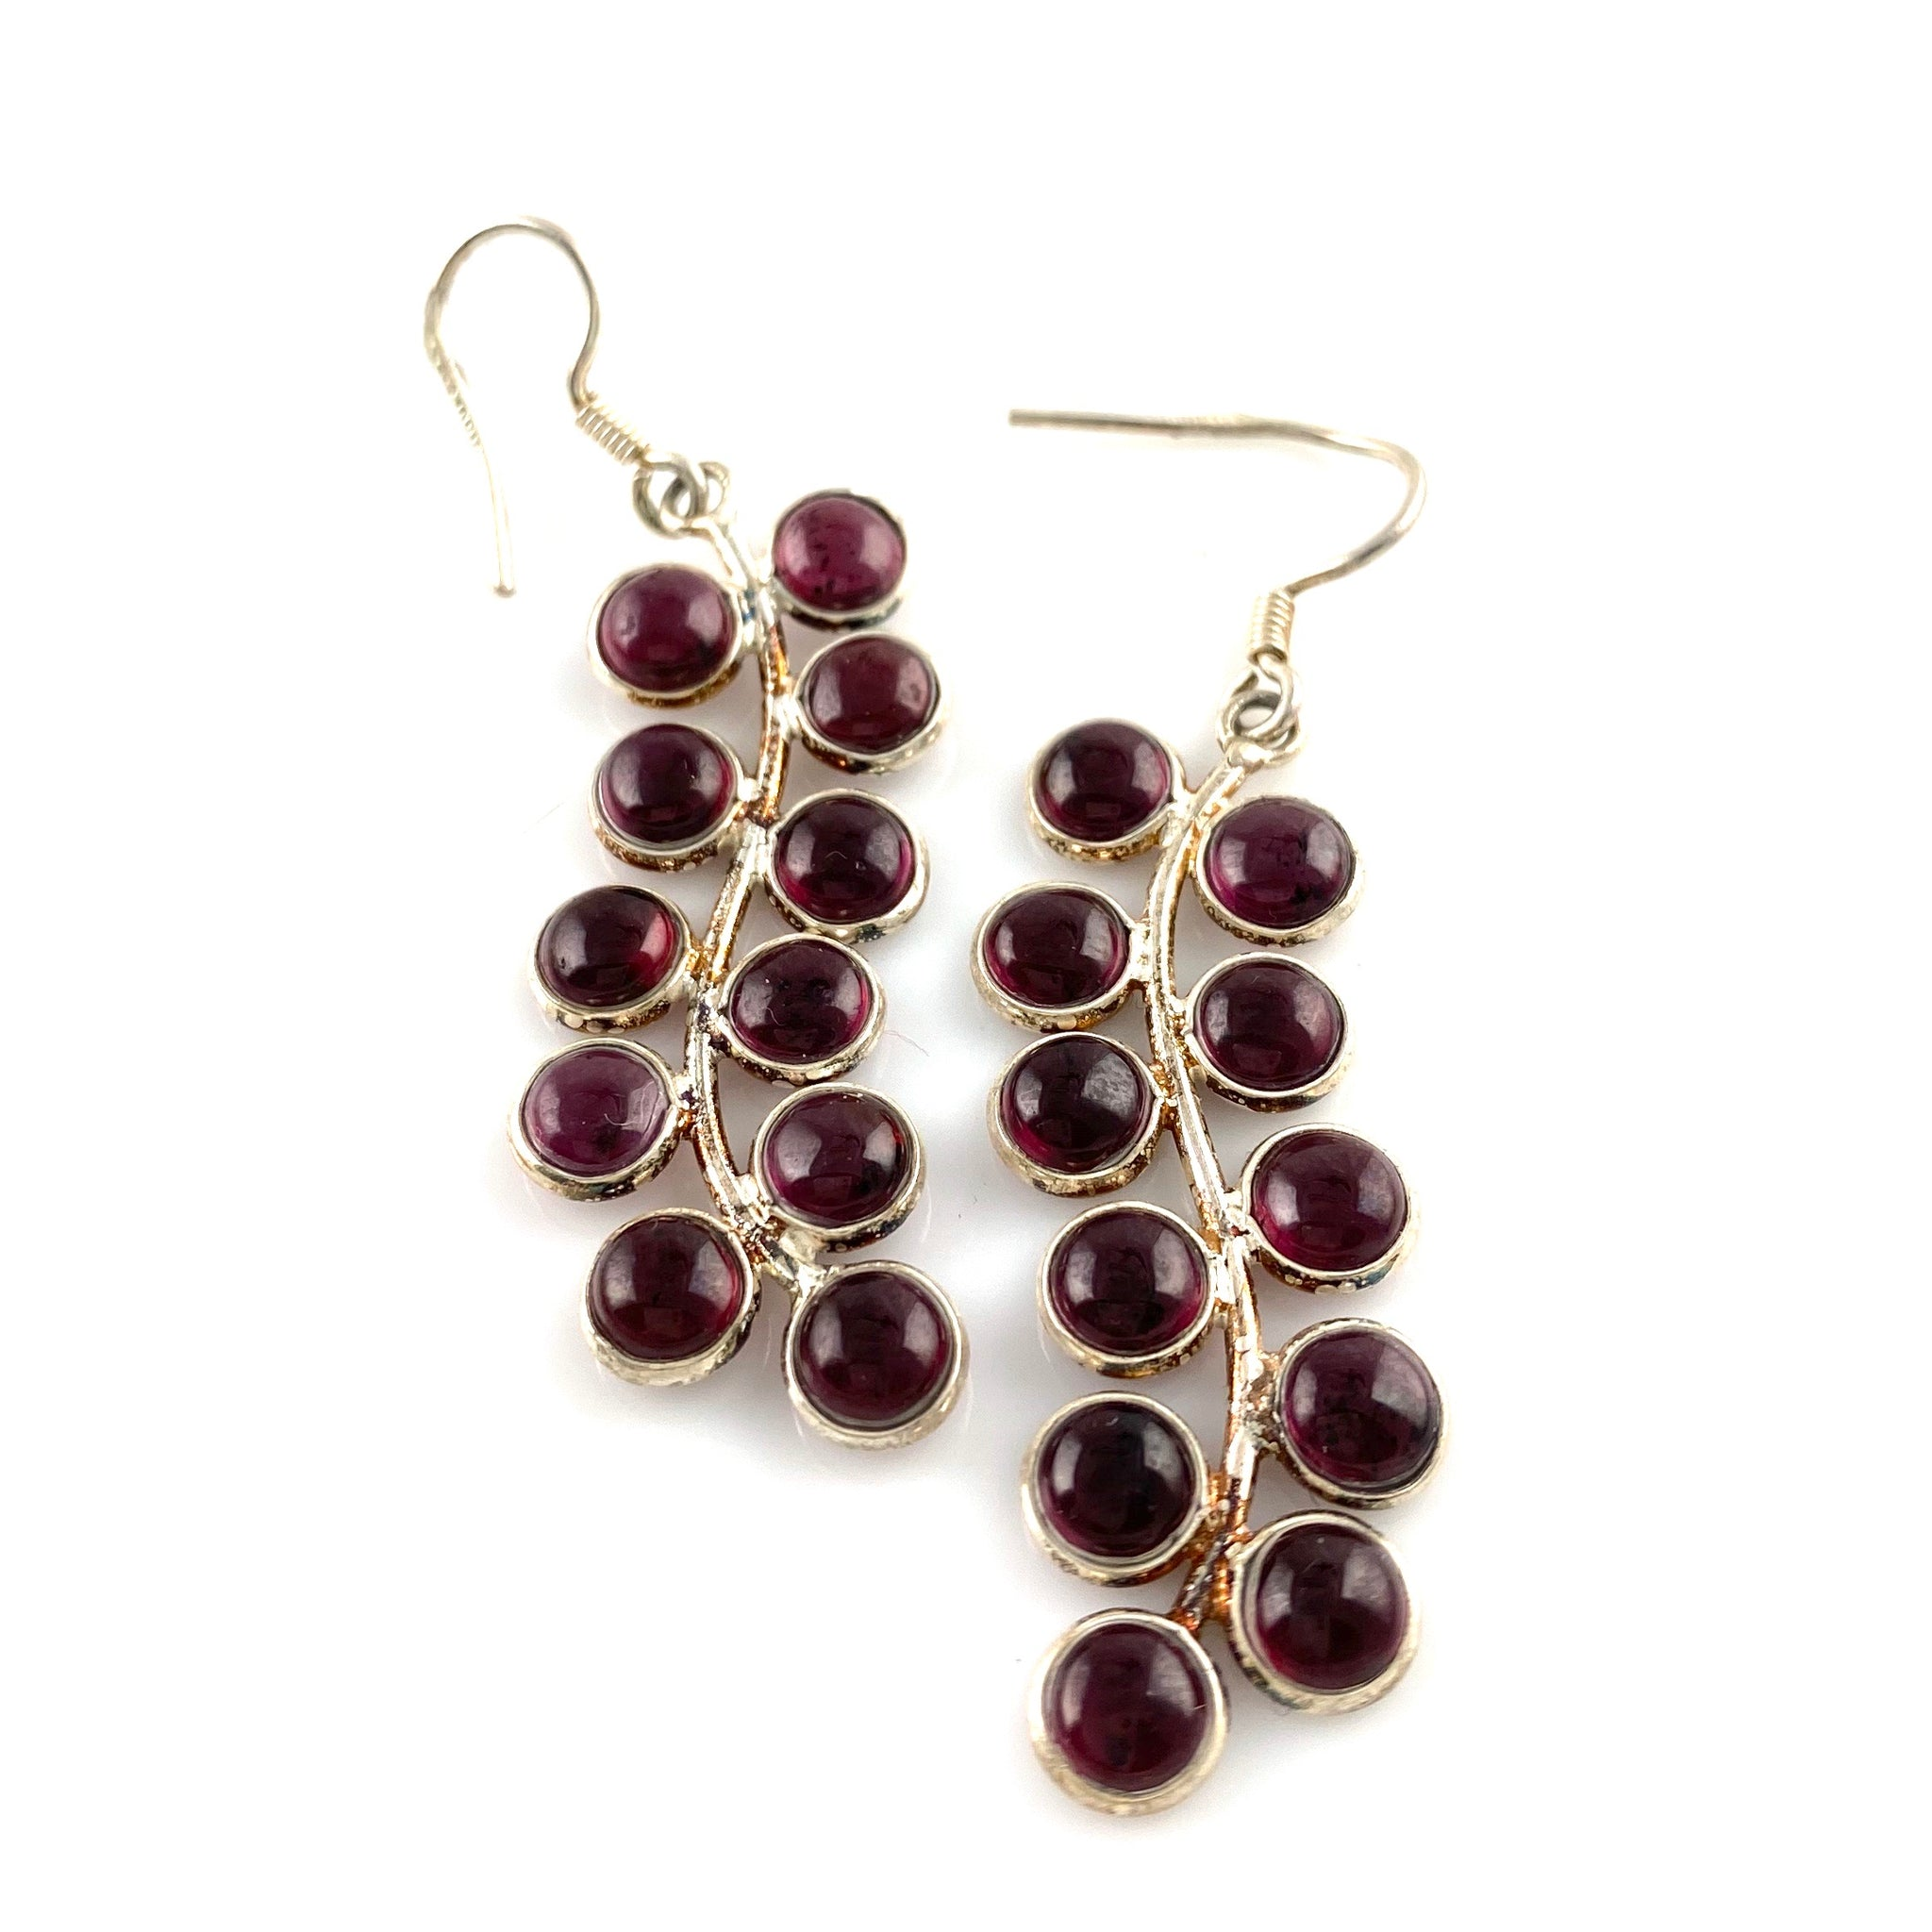 Garnet Sterling Silver Vine Earrings - Keja Designs Jewelry